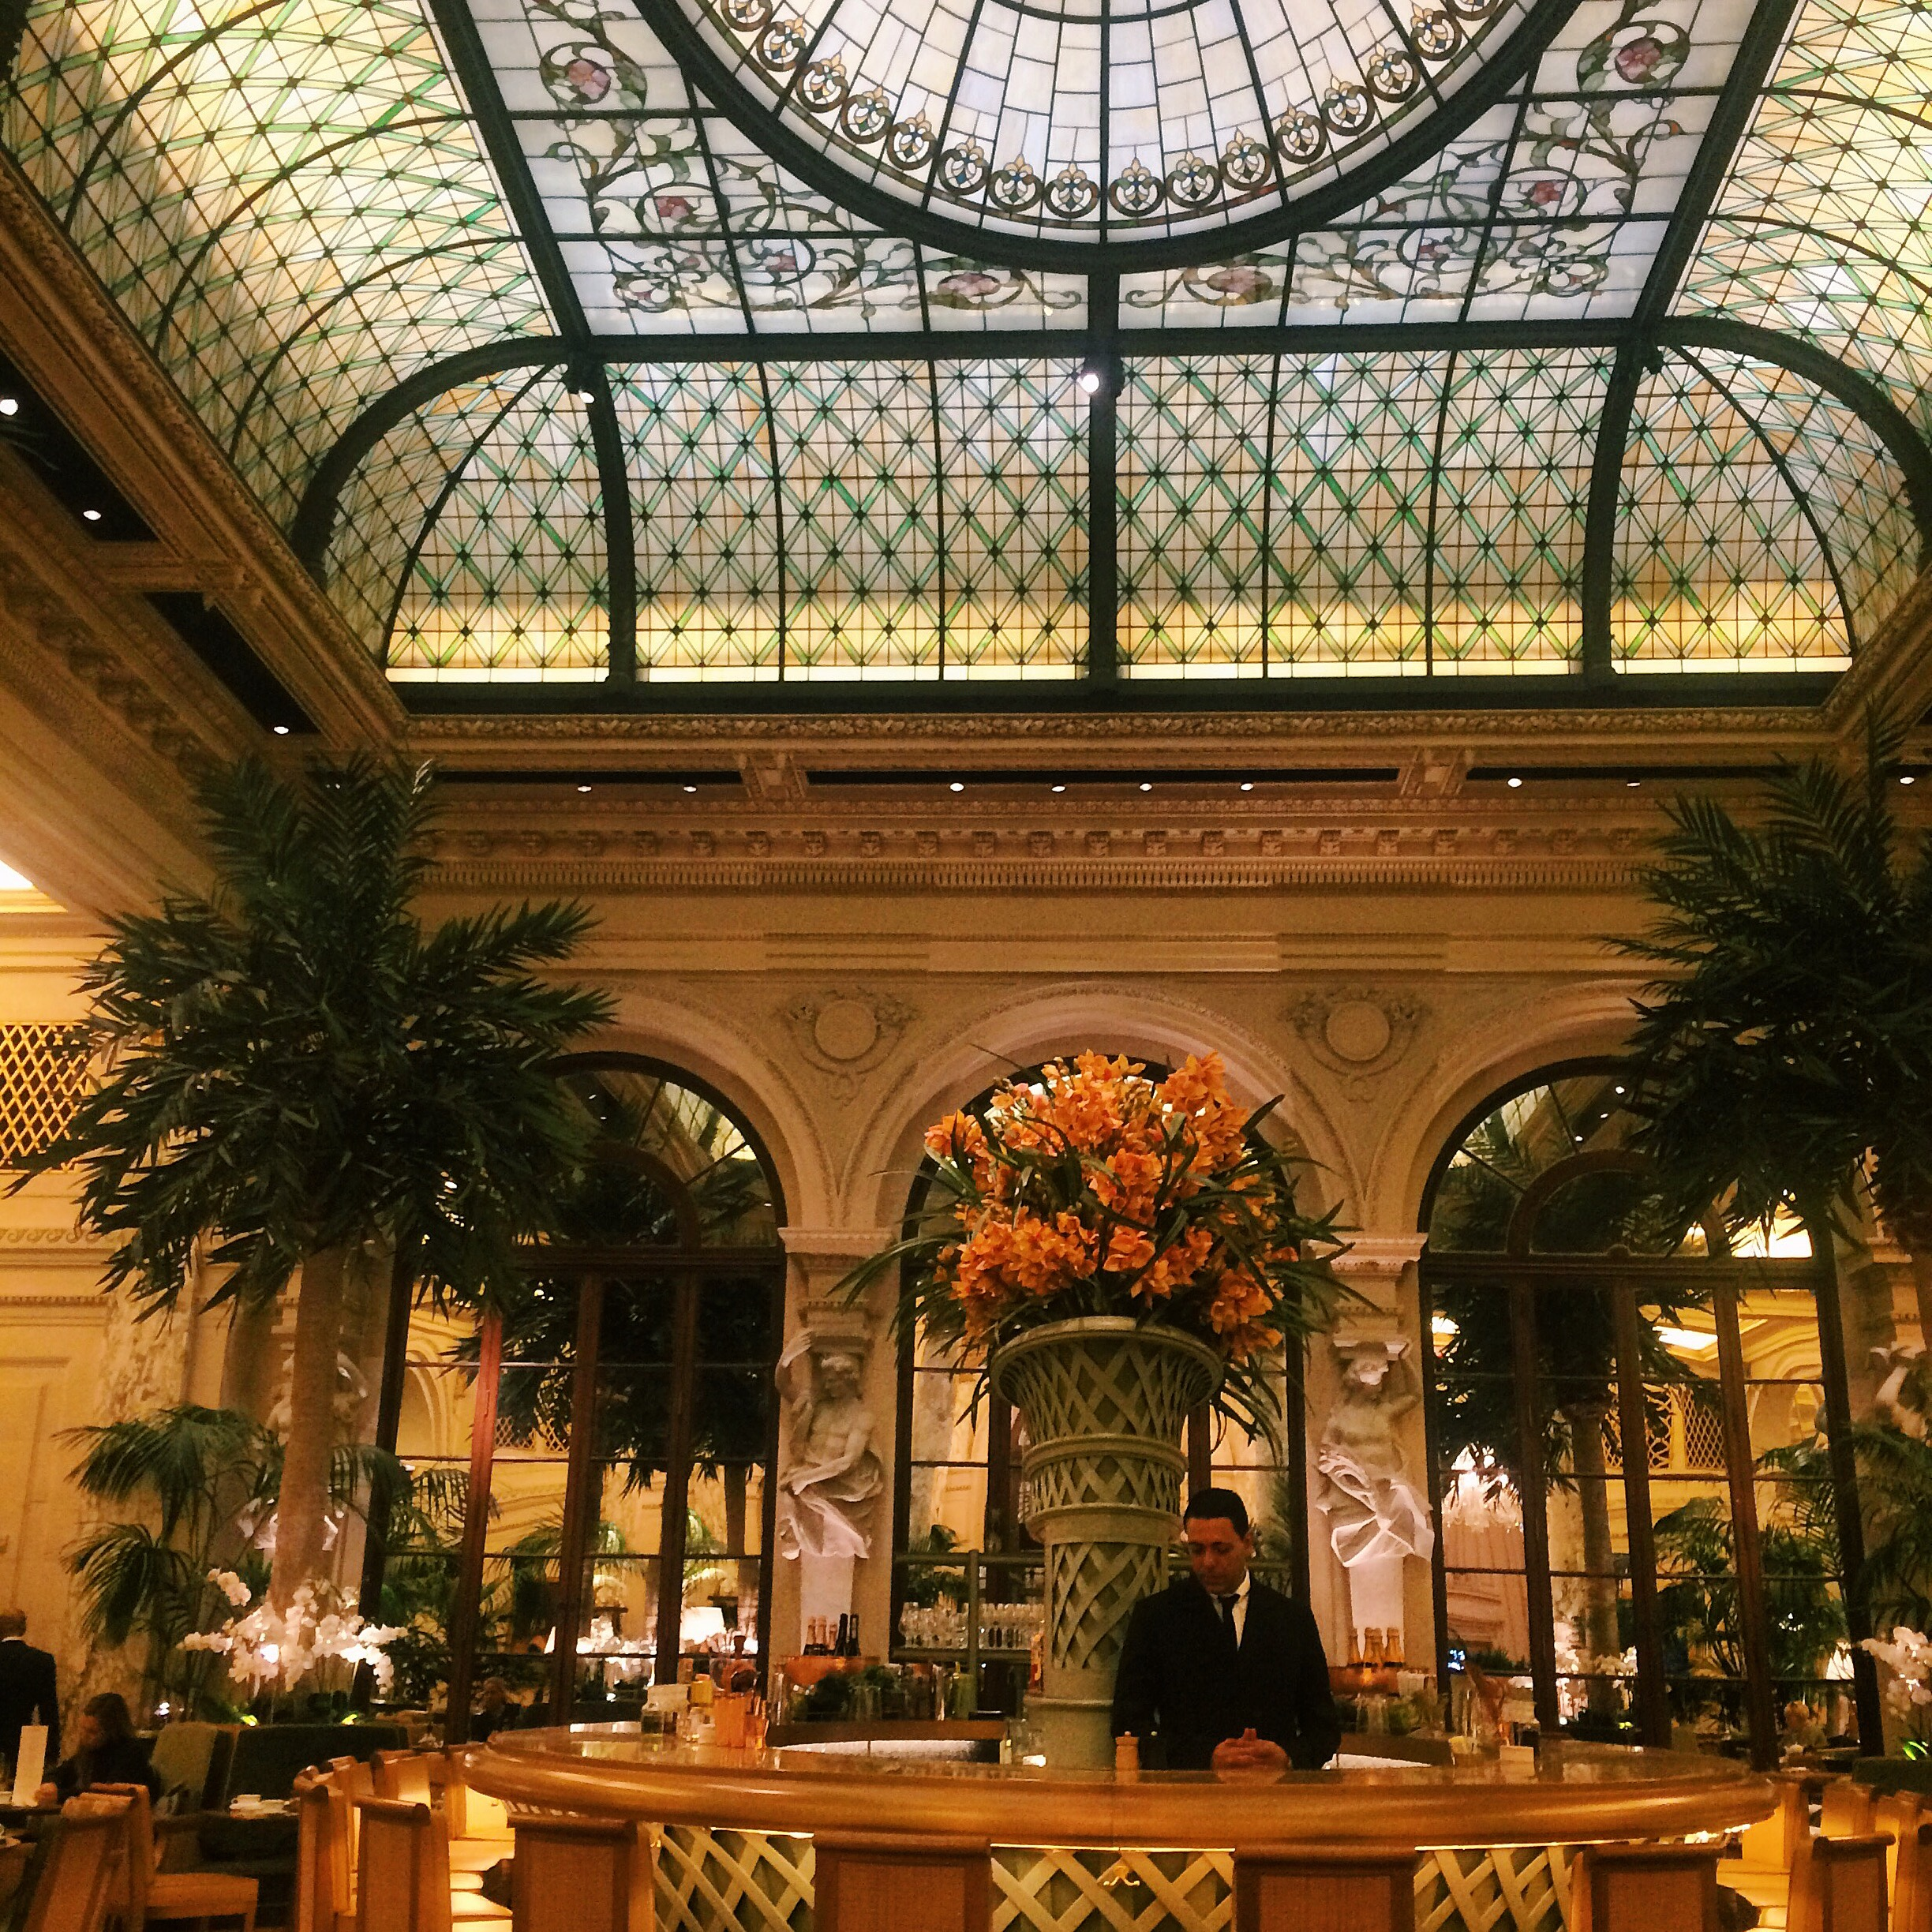 Afternoon Tea at The Plaza Hotel New York